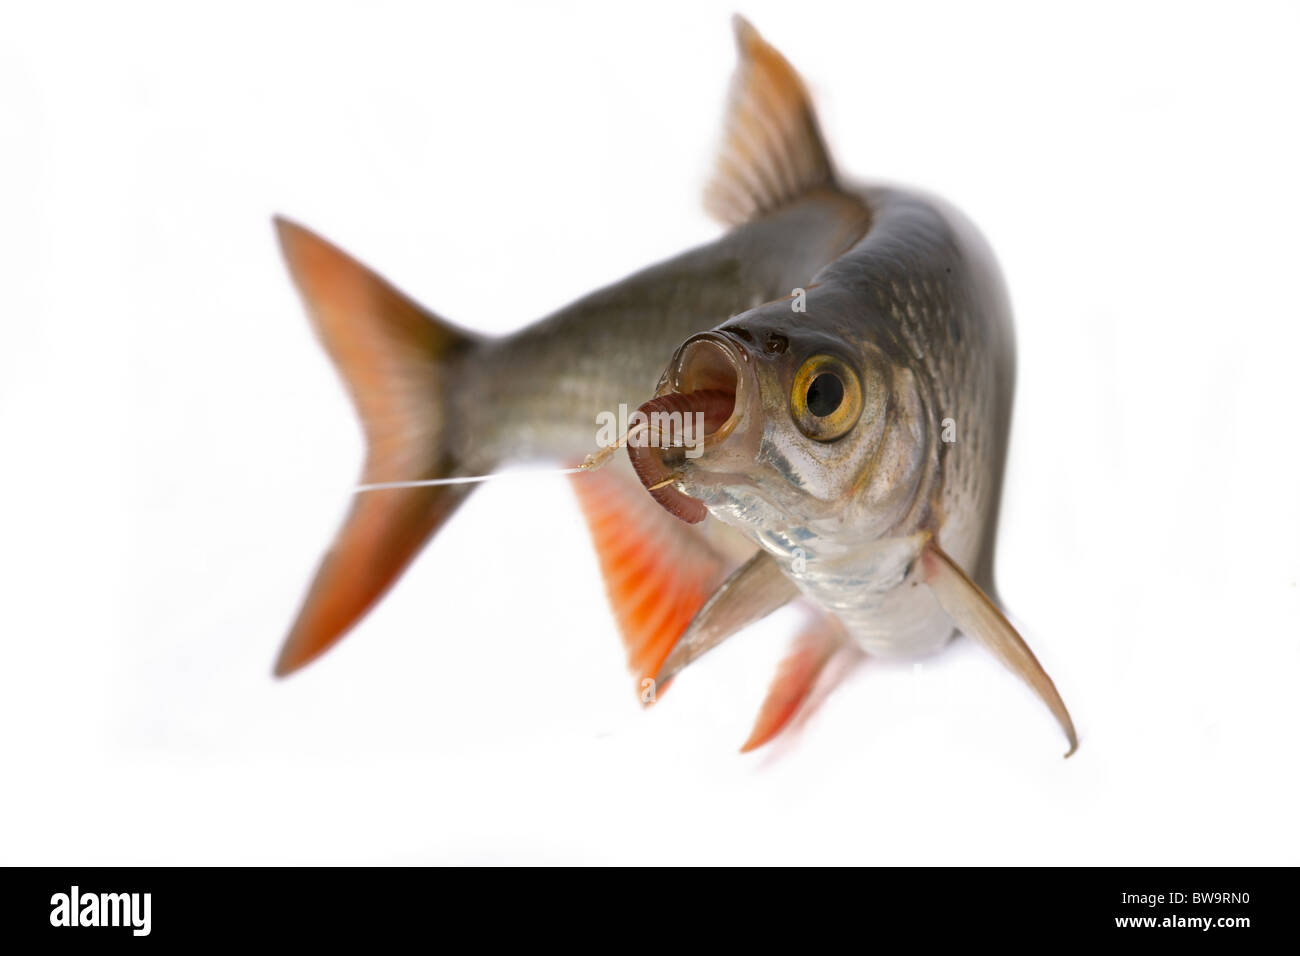 Common rudd most widespread fresh-water fish in territory of Asia and Europe. - Stock Image